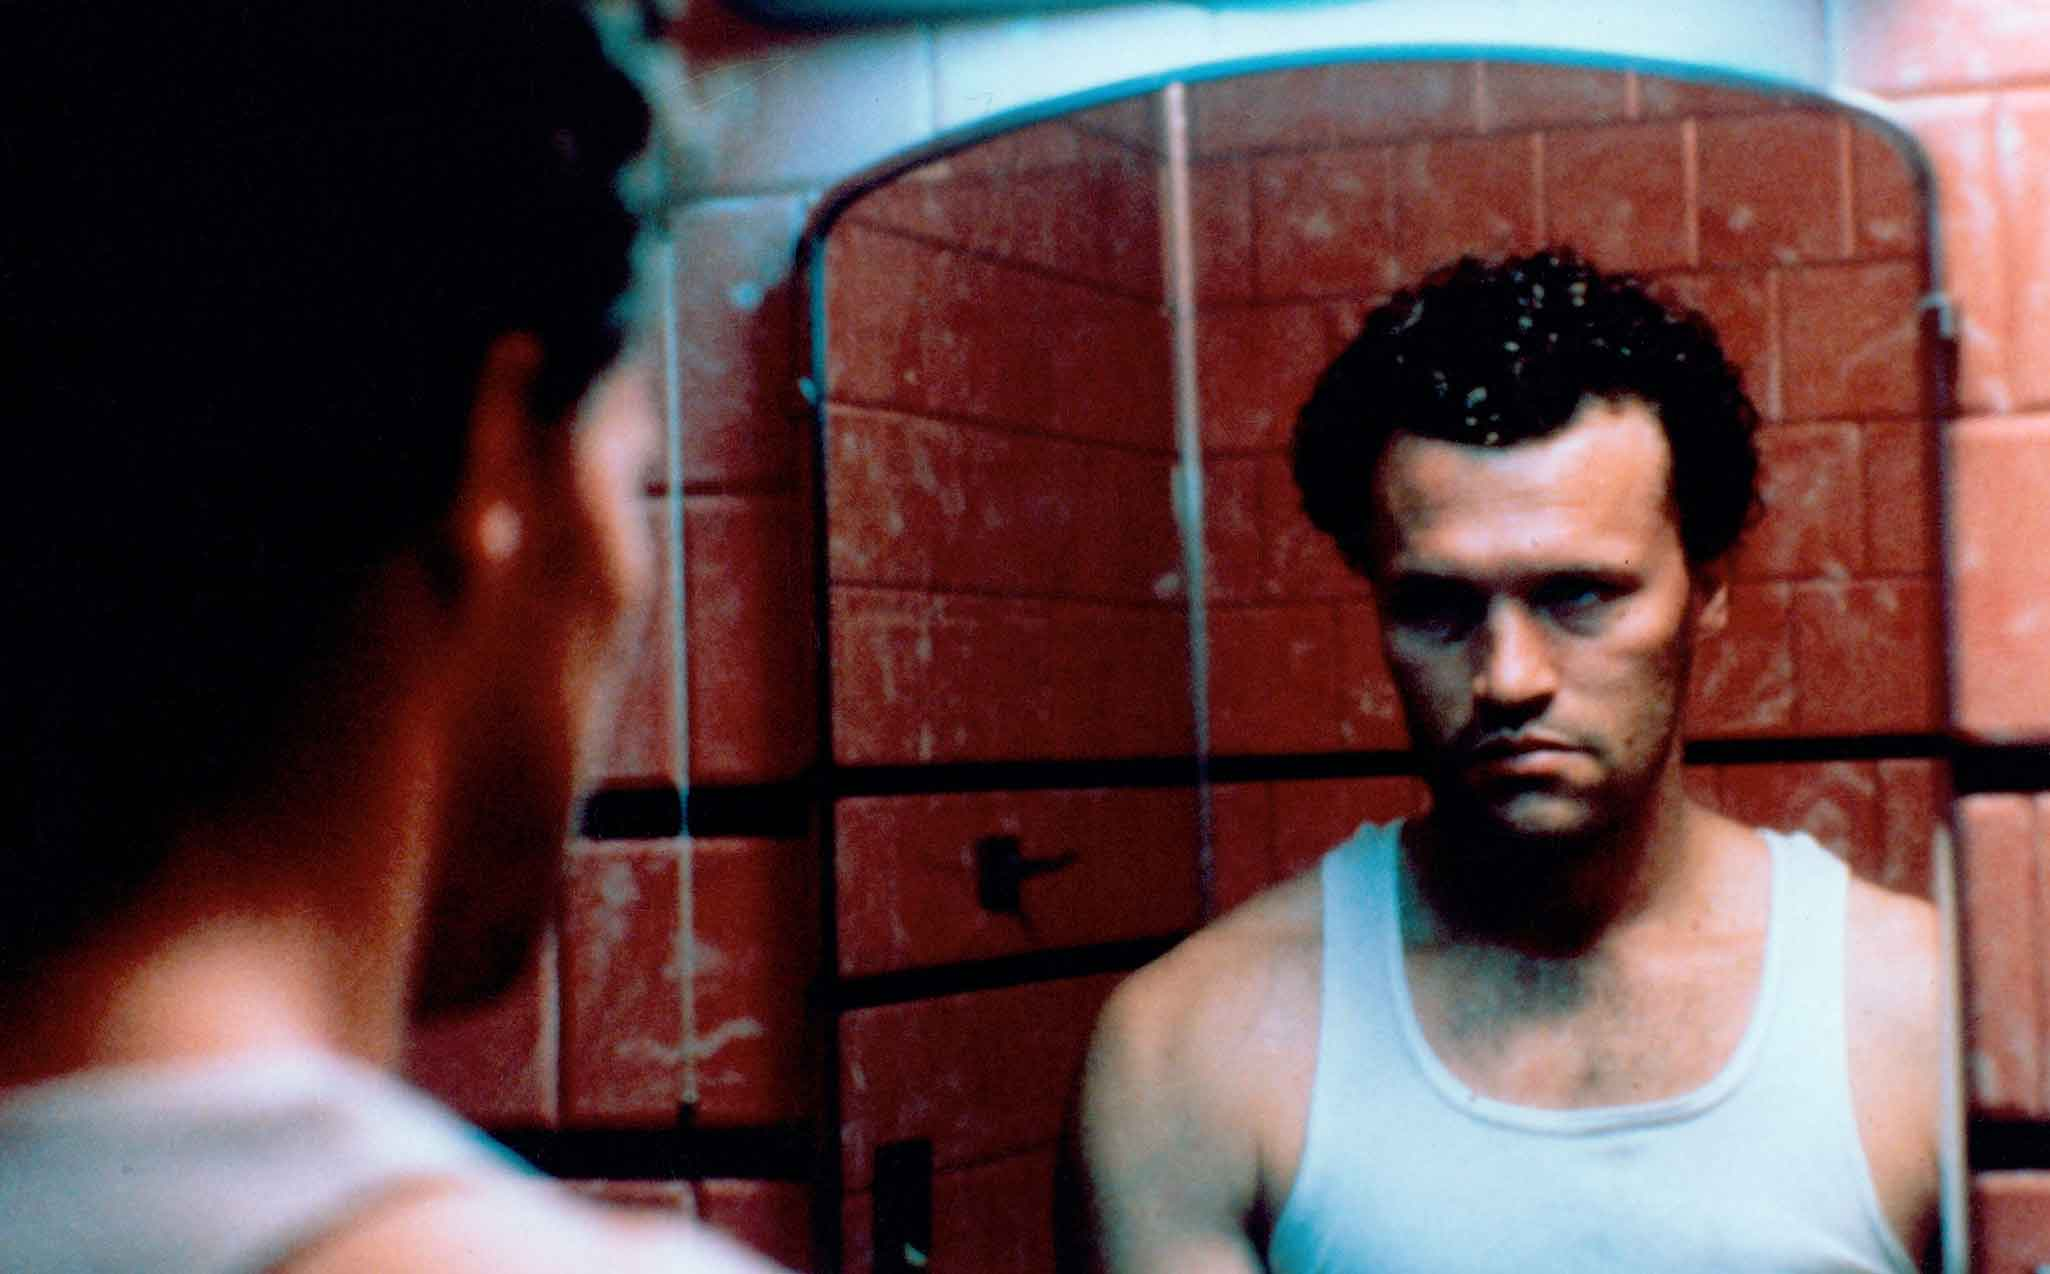 Michael Rooker in Henry: Portrait of a Serial Killer.